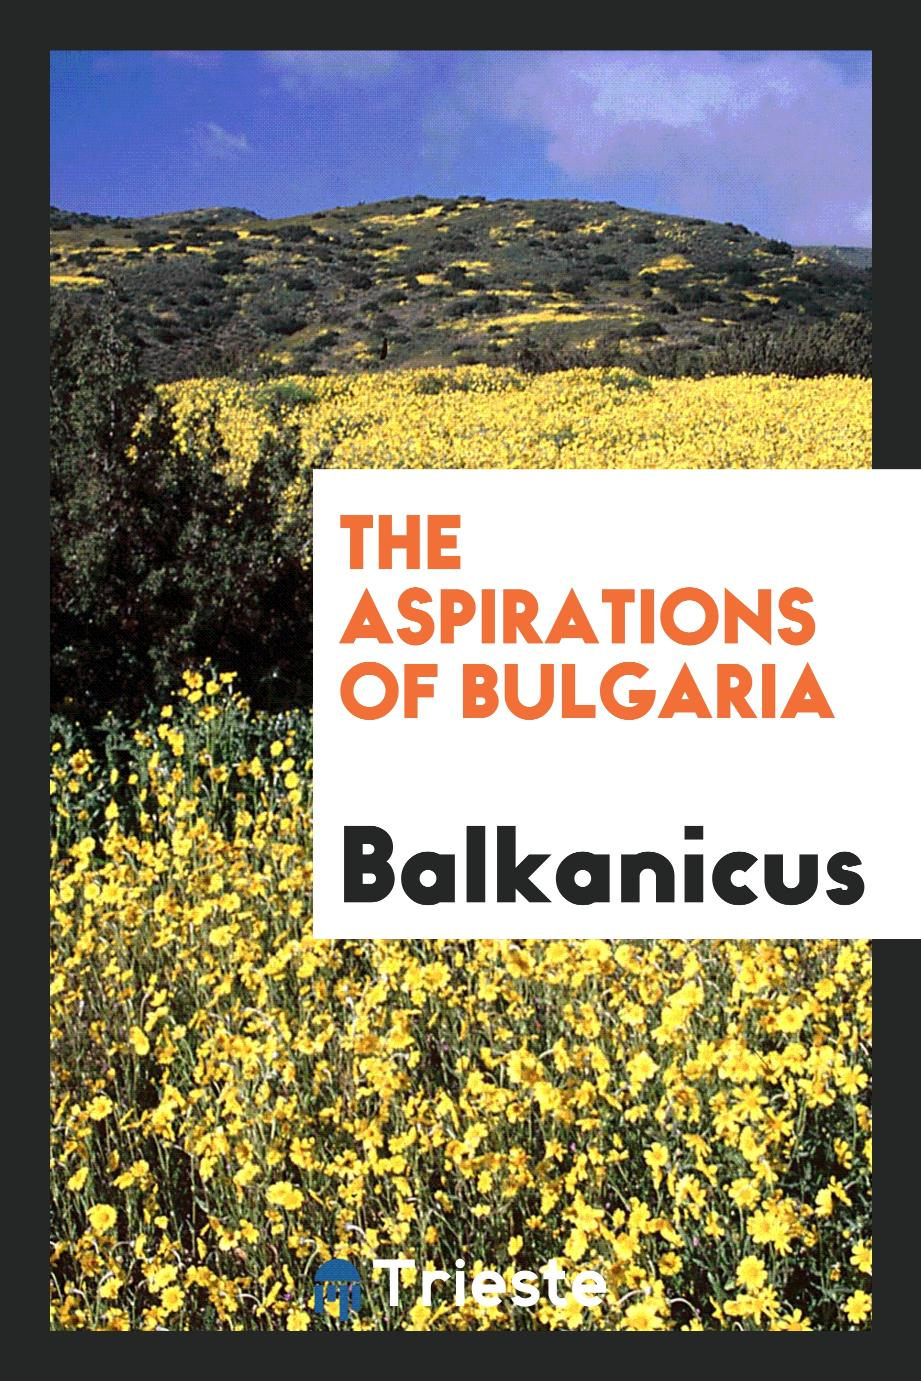 The aspirations of Bulgaria